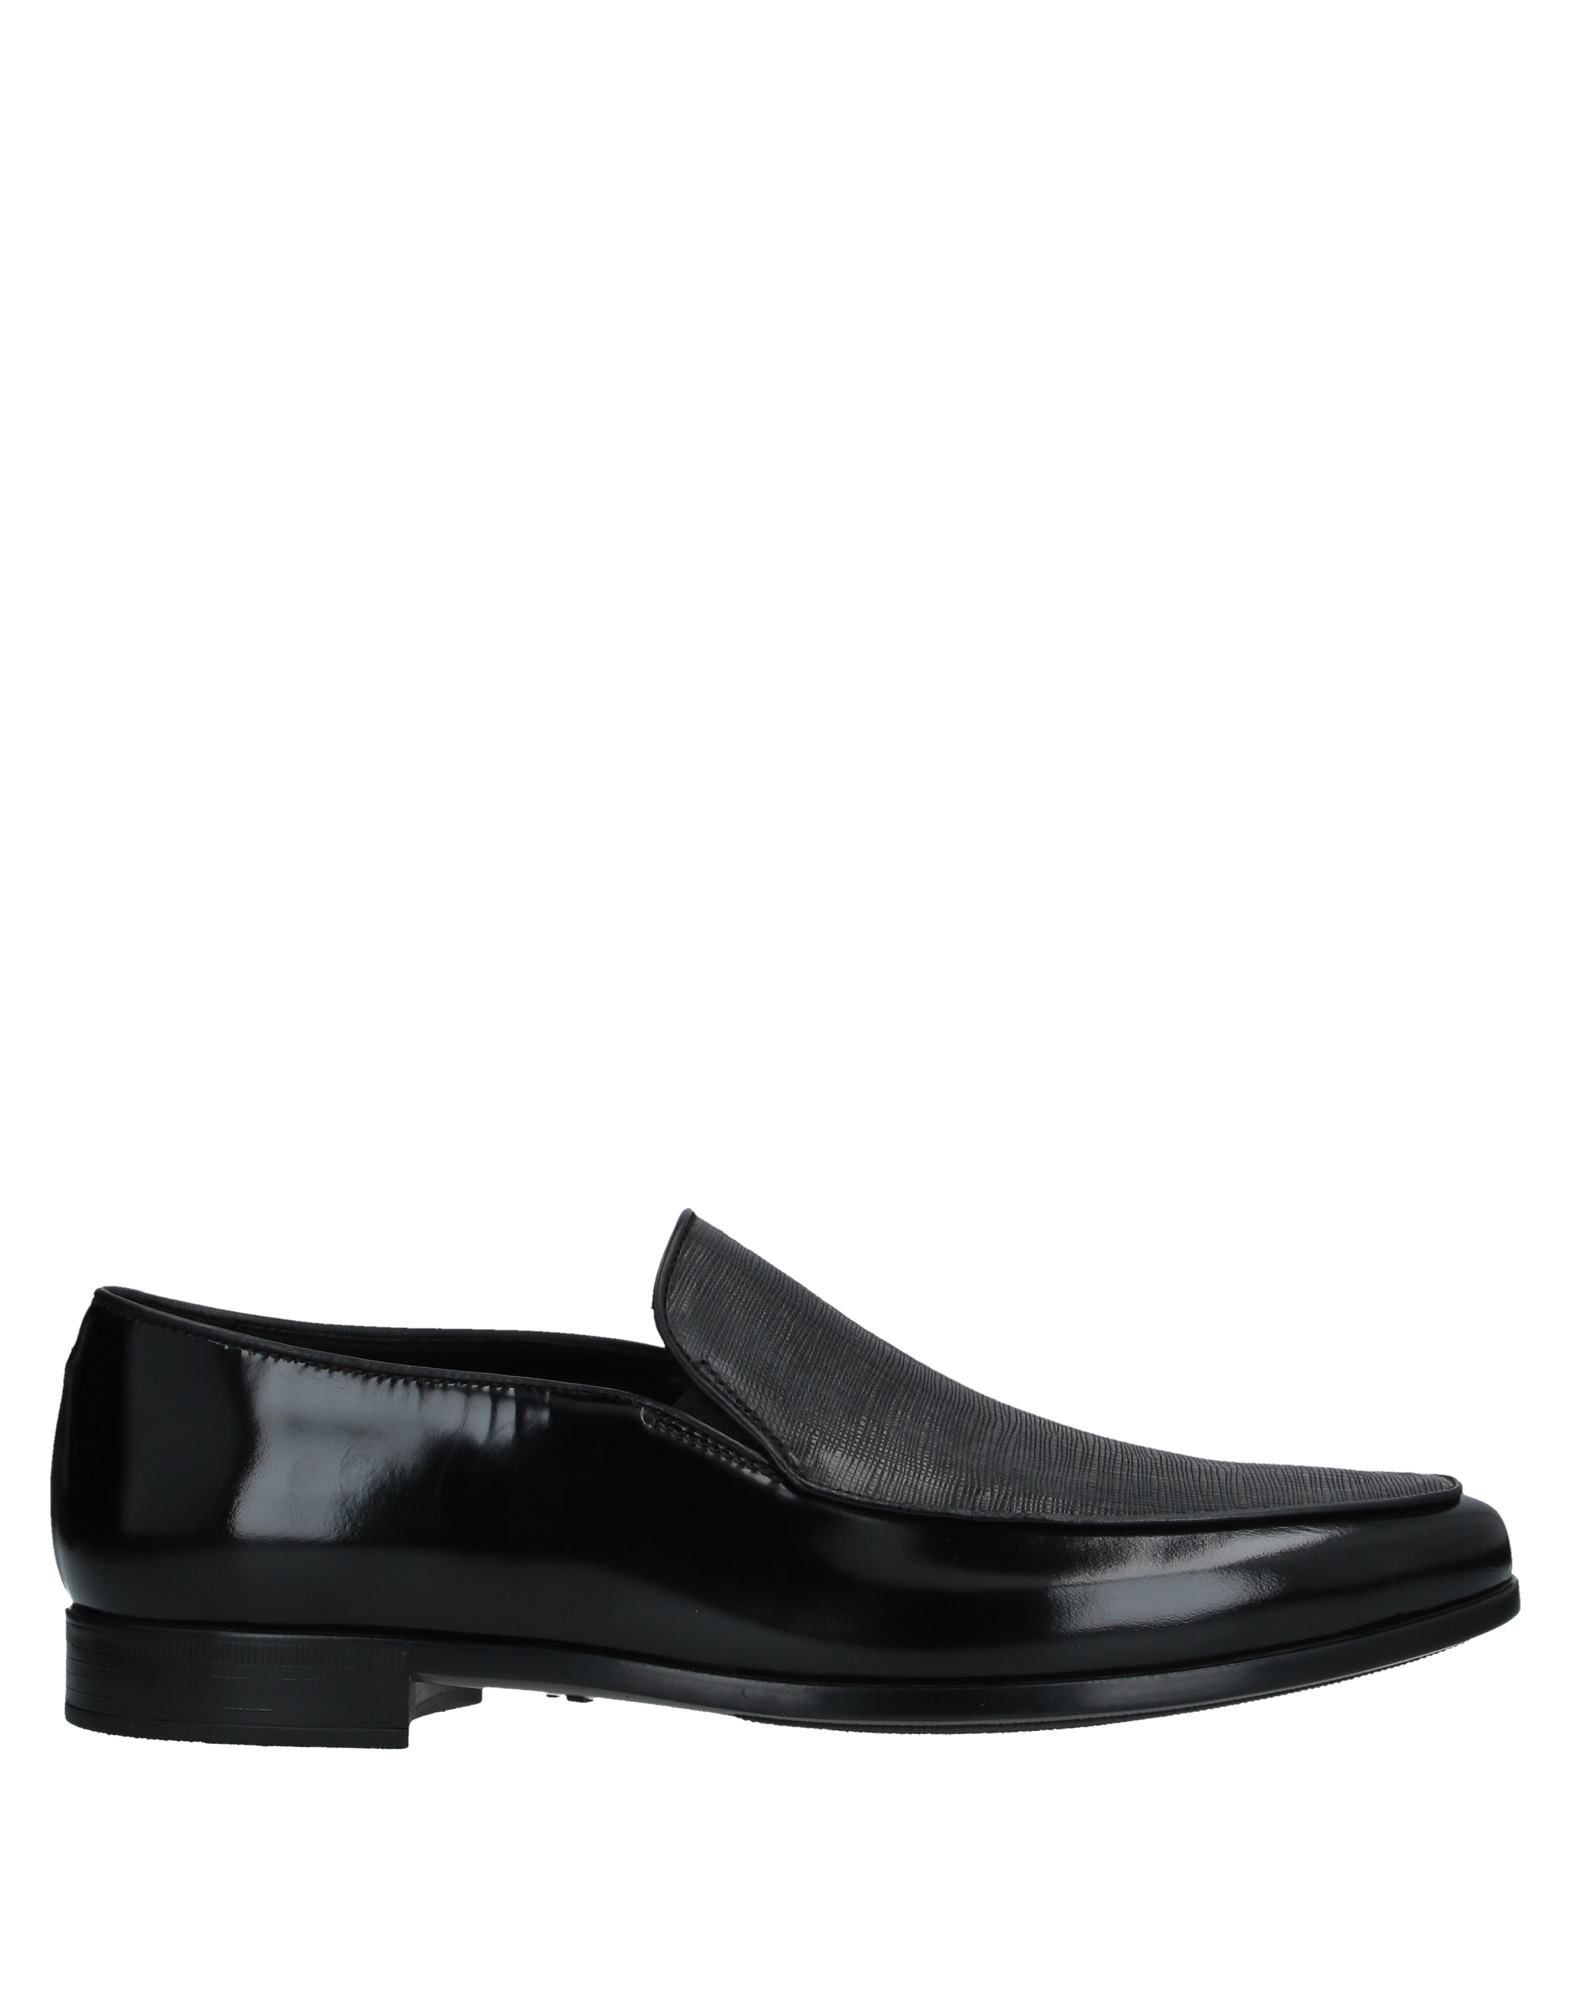 GIORGIO ARMANI Loafers. leather, no appliqués, solid color, round toeline, flat, leather lining, rubber sole, contains non-textile parts of animal origin. Soft Leather